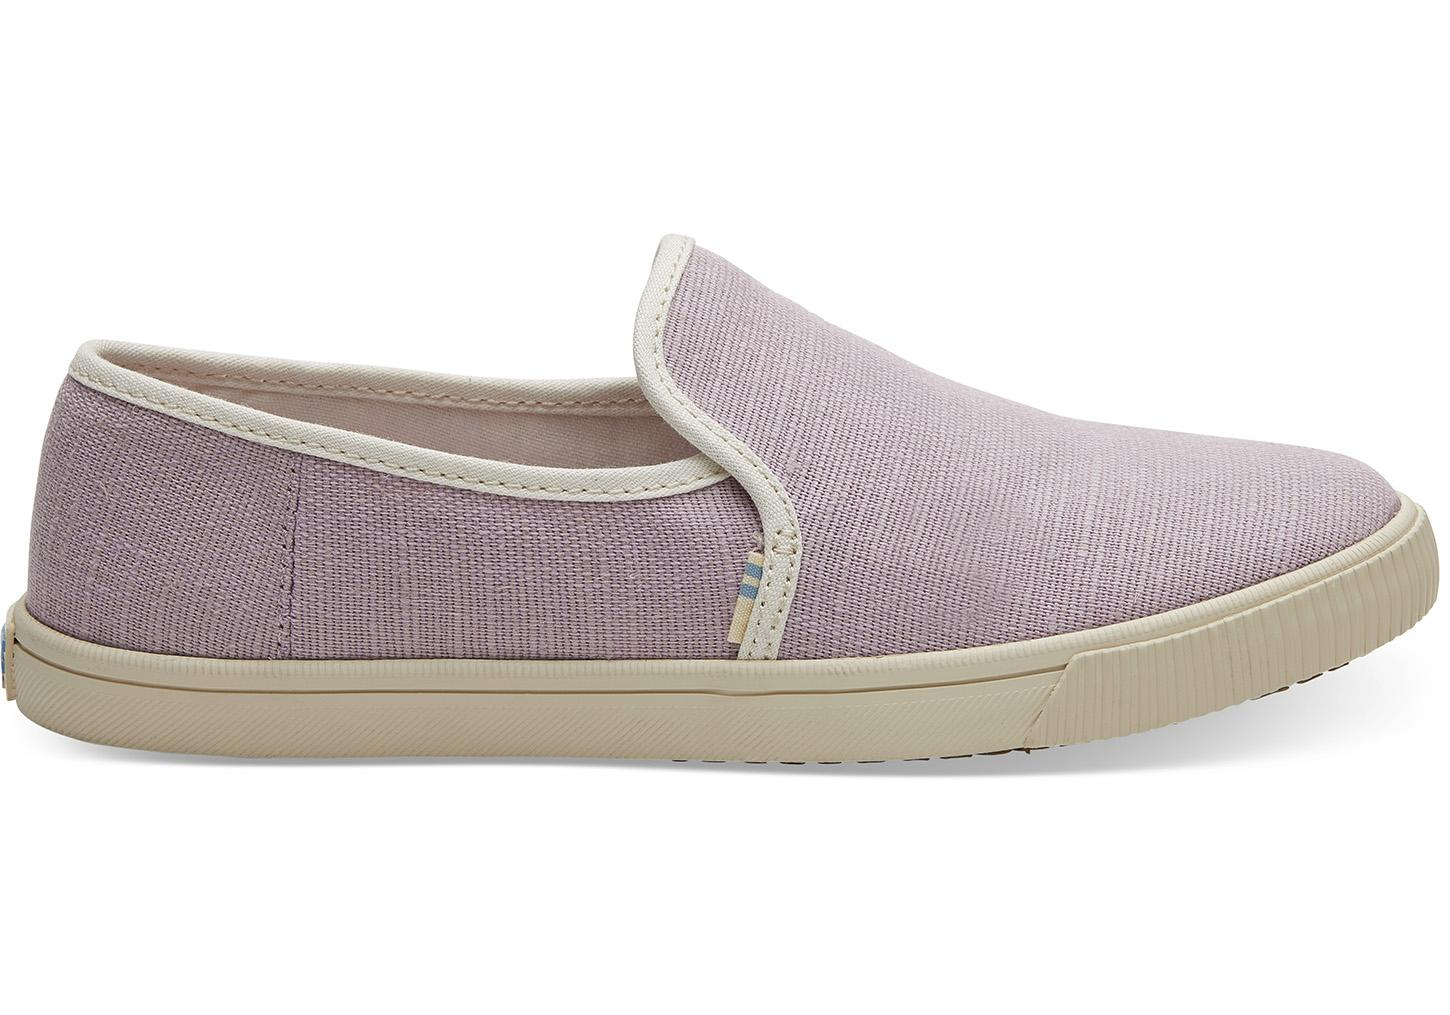 99cb0c430f Lyst - TOMS Burnished Lilac Heritage Canvas Women s Clemente Slip ...